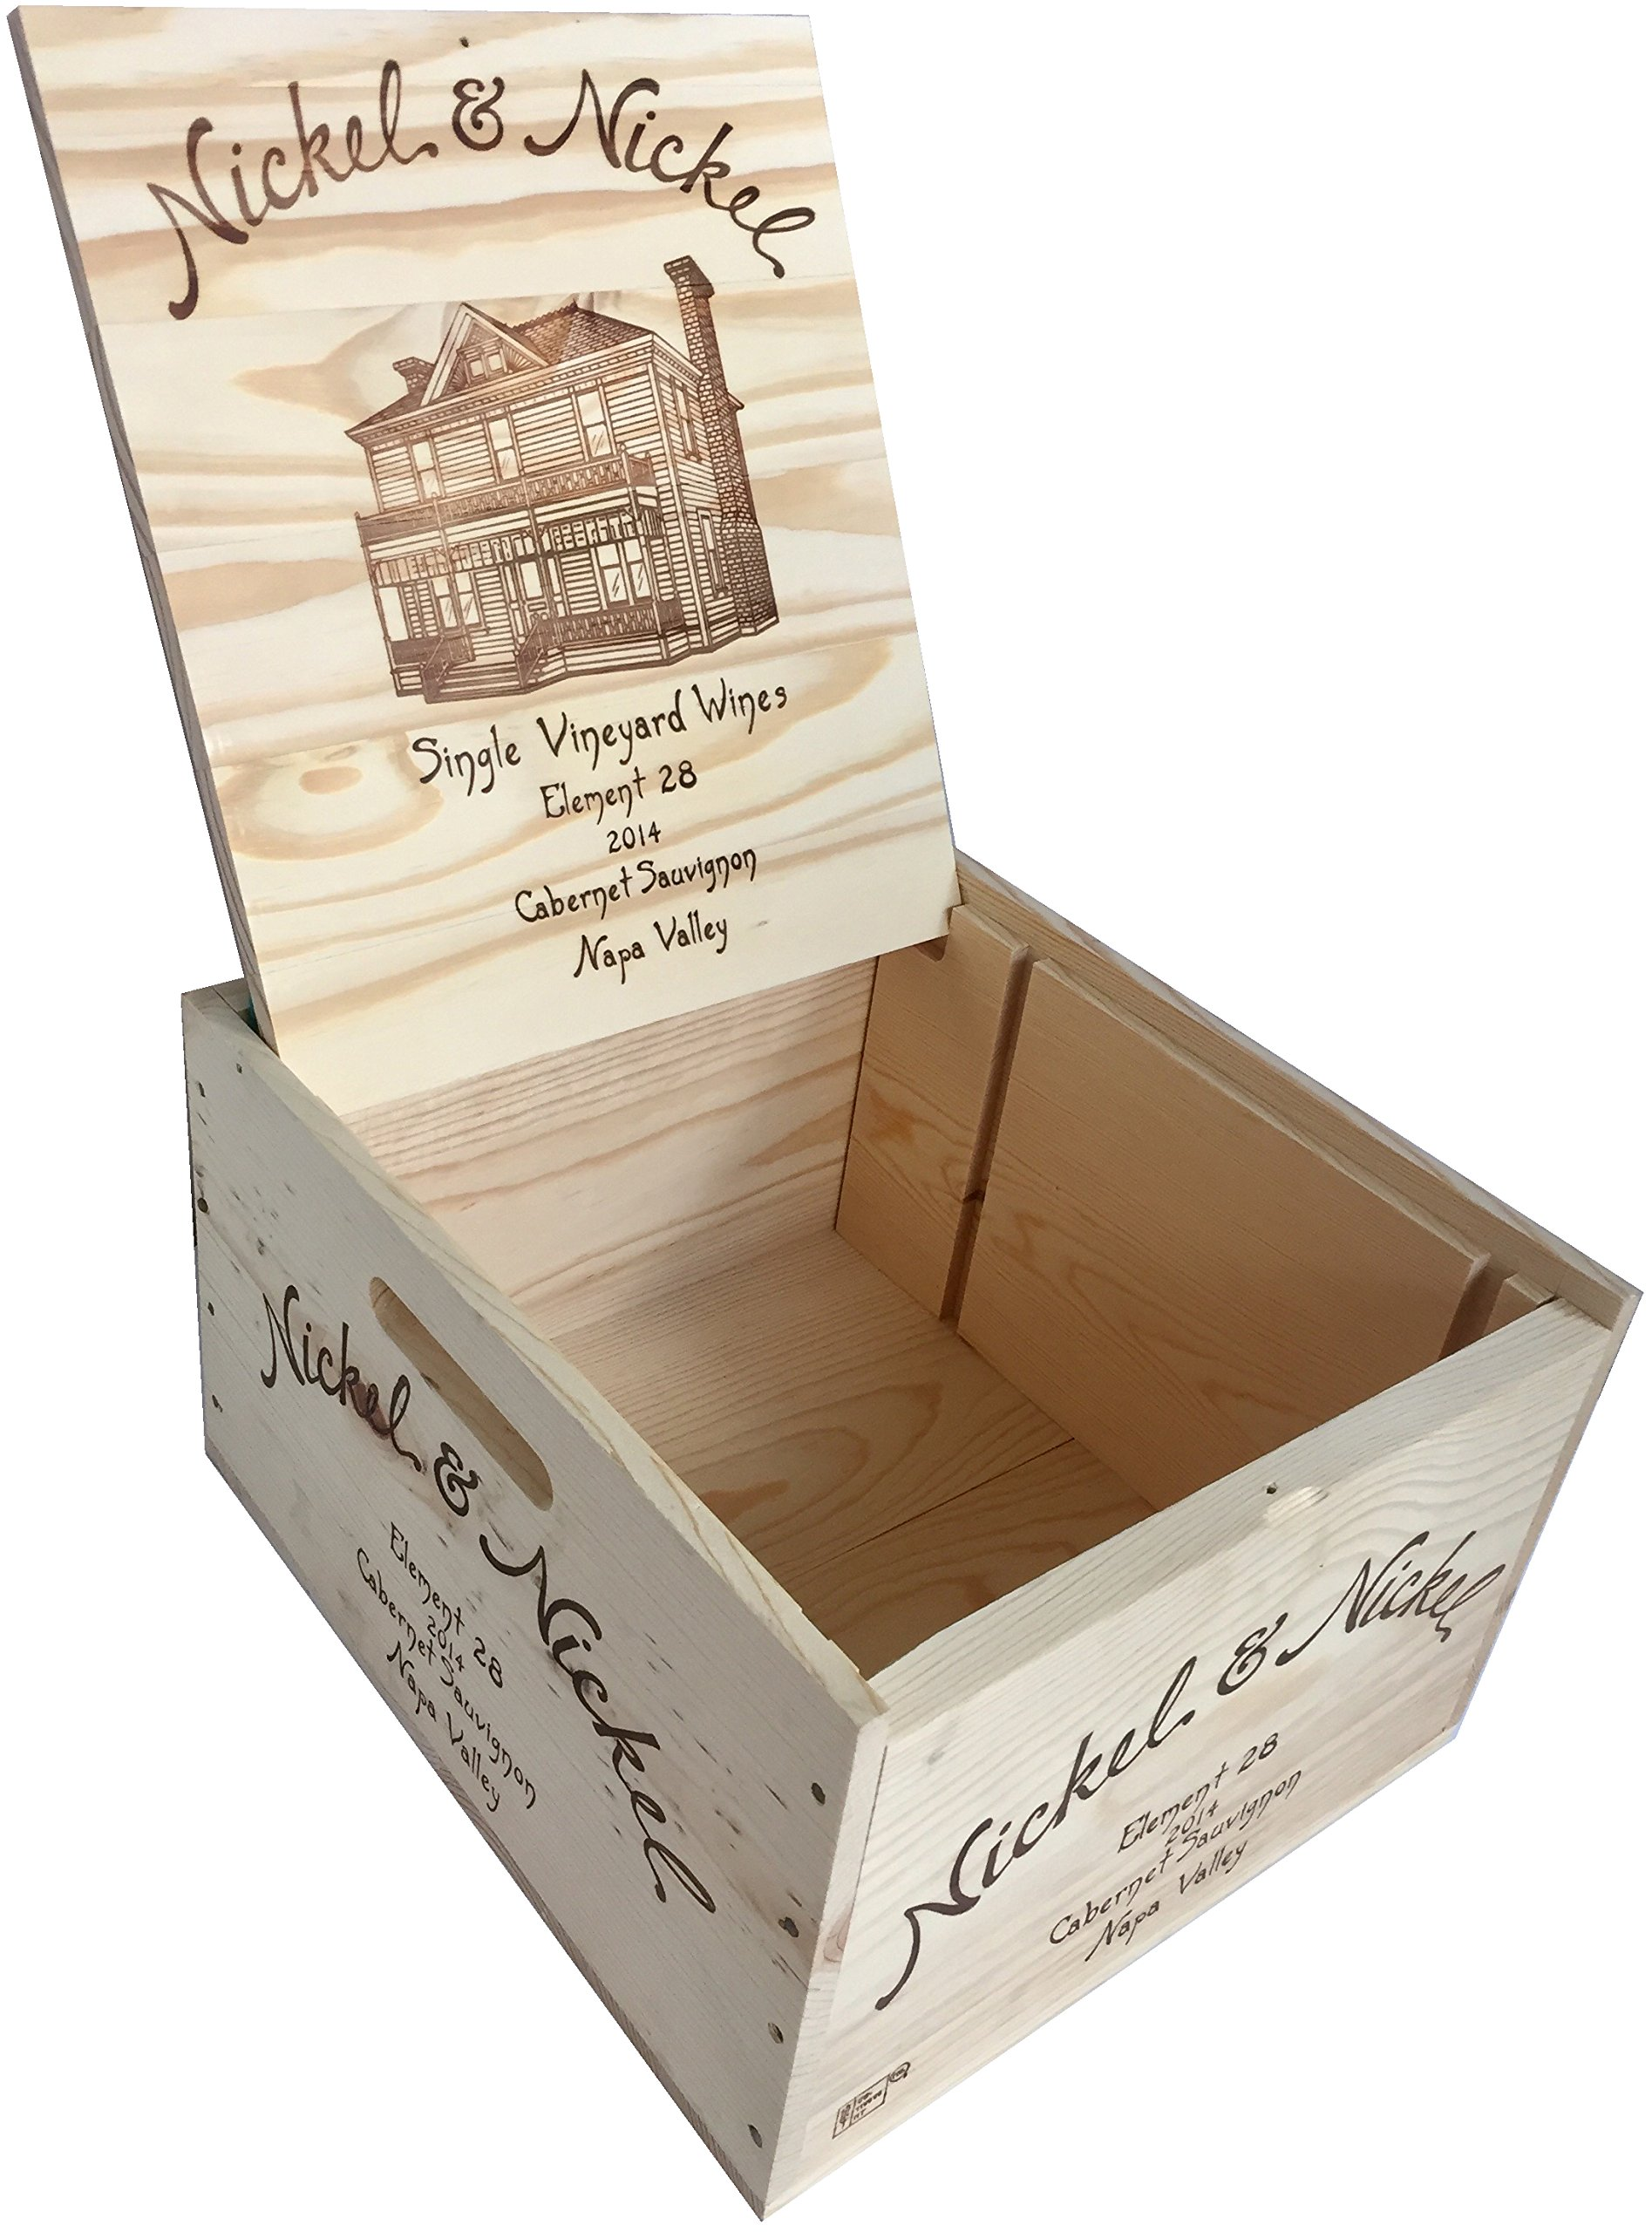 Vineyard Crates Wine Crate - Original Nickel & Nickel Decorative Wooden Wine Box with Hinged Lid and Logos On 5 Sides - Multiple Sizes - For Wedding, DIY or Wine Storage (14x12x8 NO Inserts) by Vineyard Crates (Image #3)